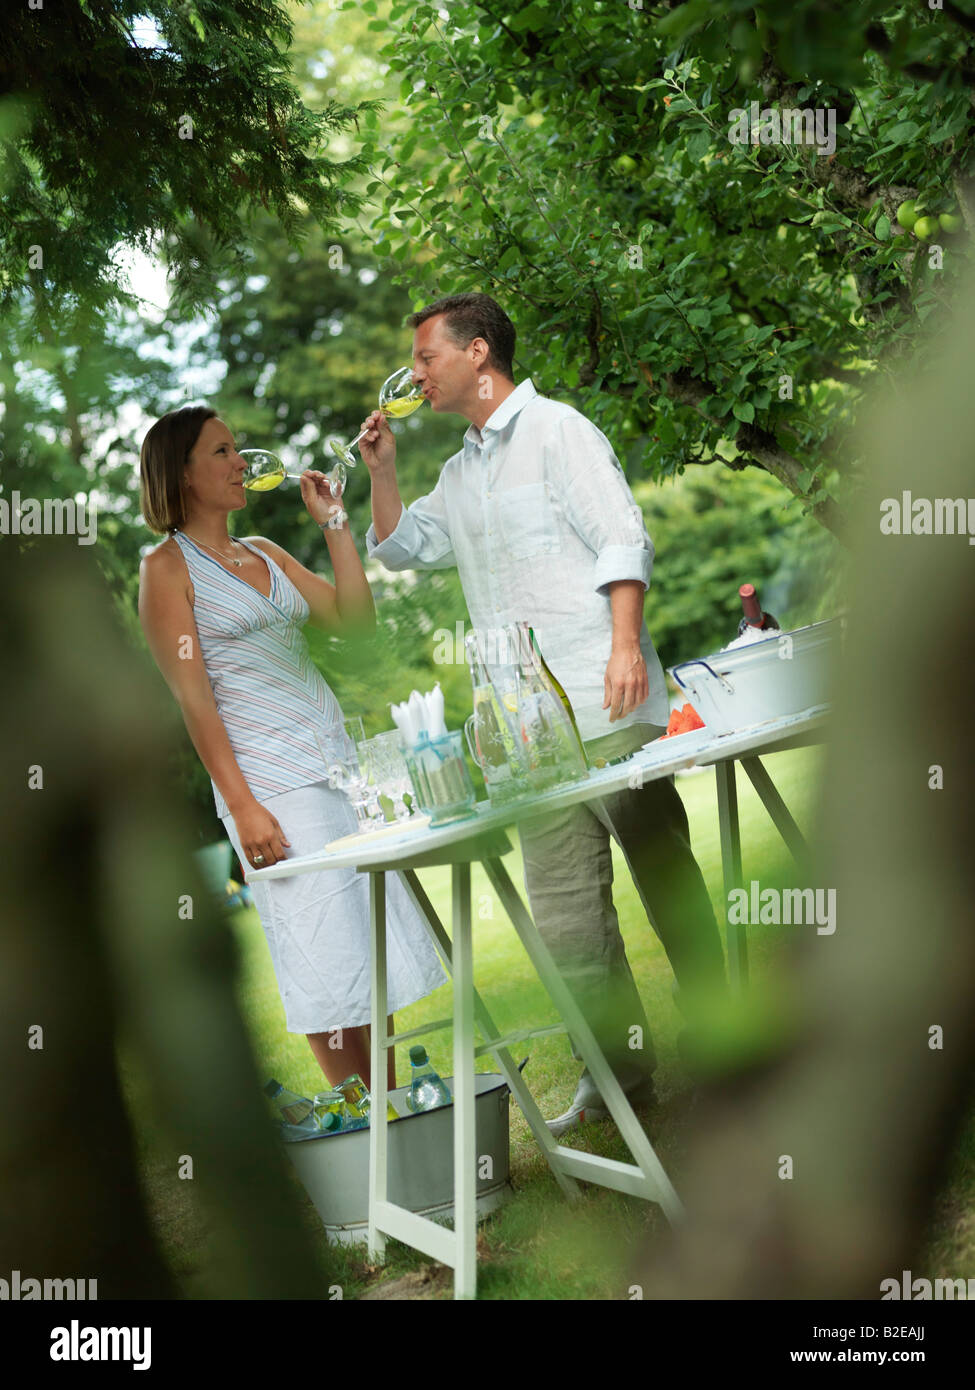 Couple drinking wine in garden - Stock Image